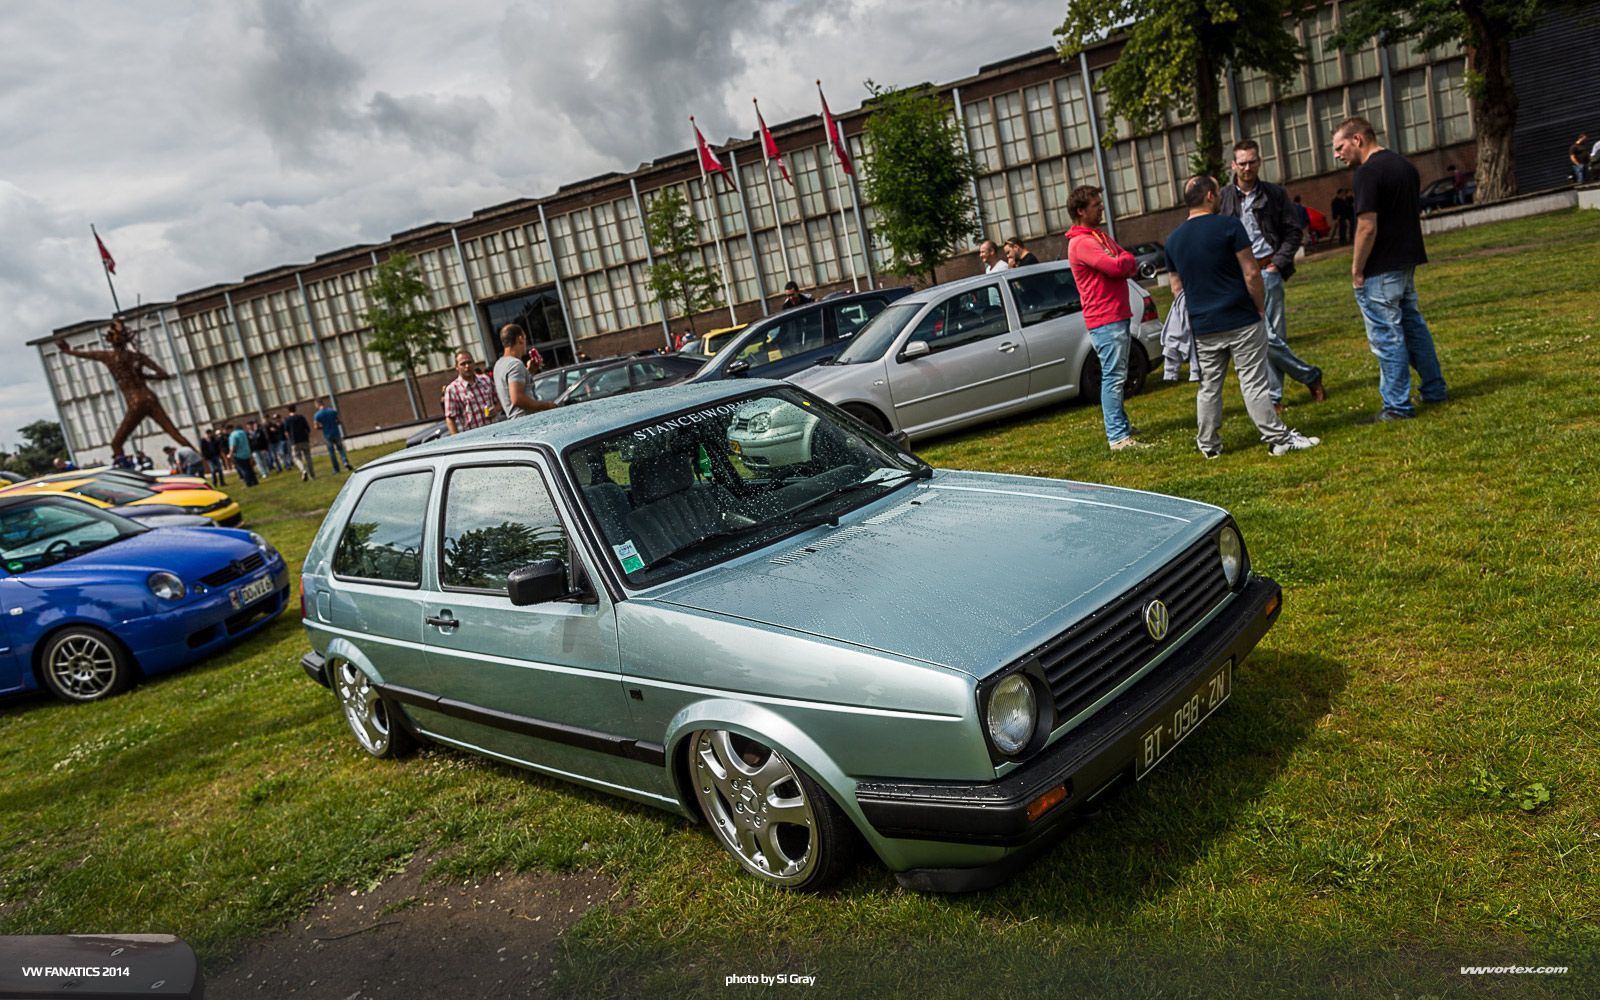 VWFanatics-2014-Si-Gray-479